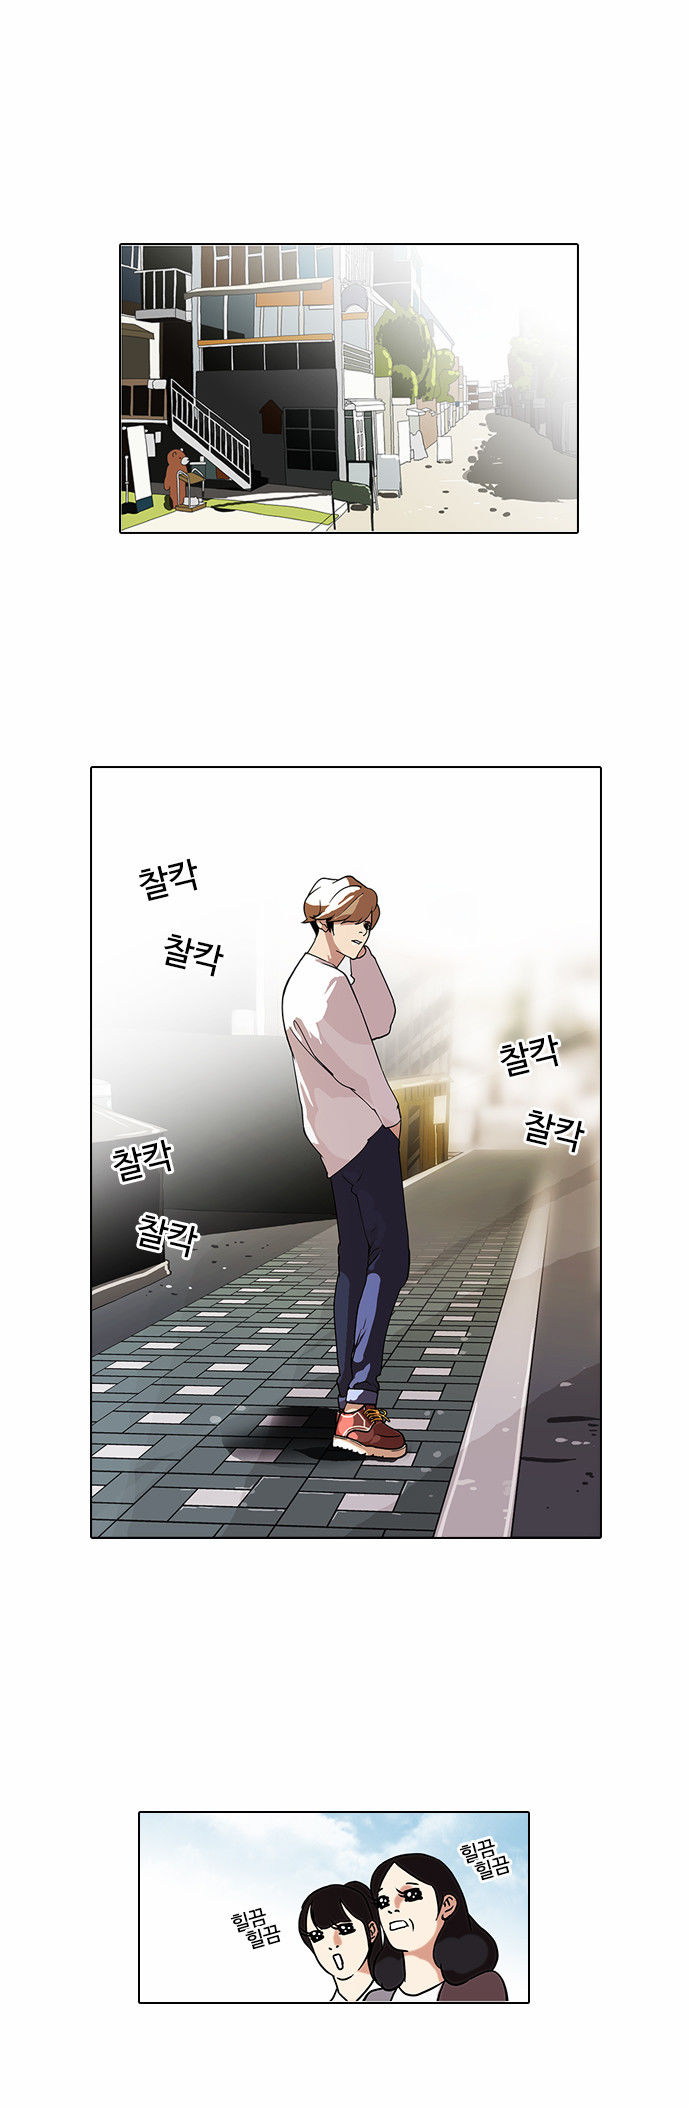 Lookism 72 Page 1